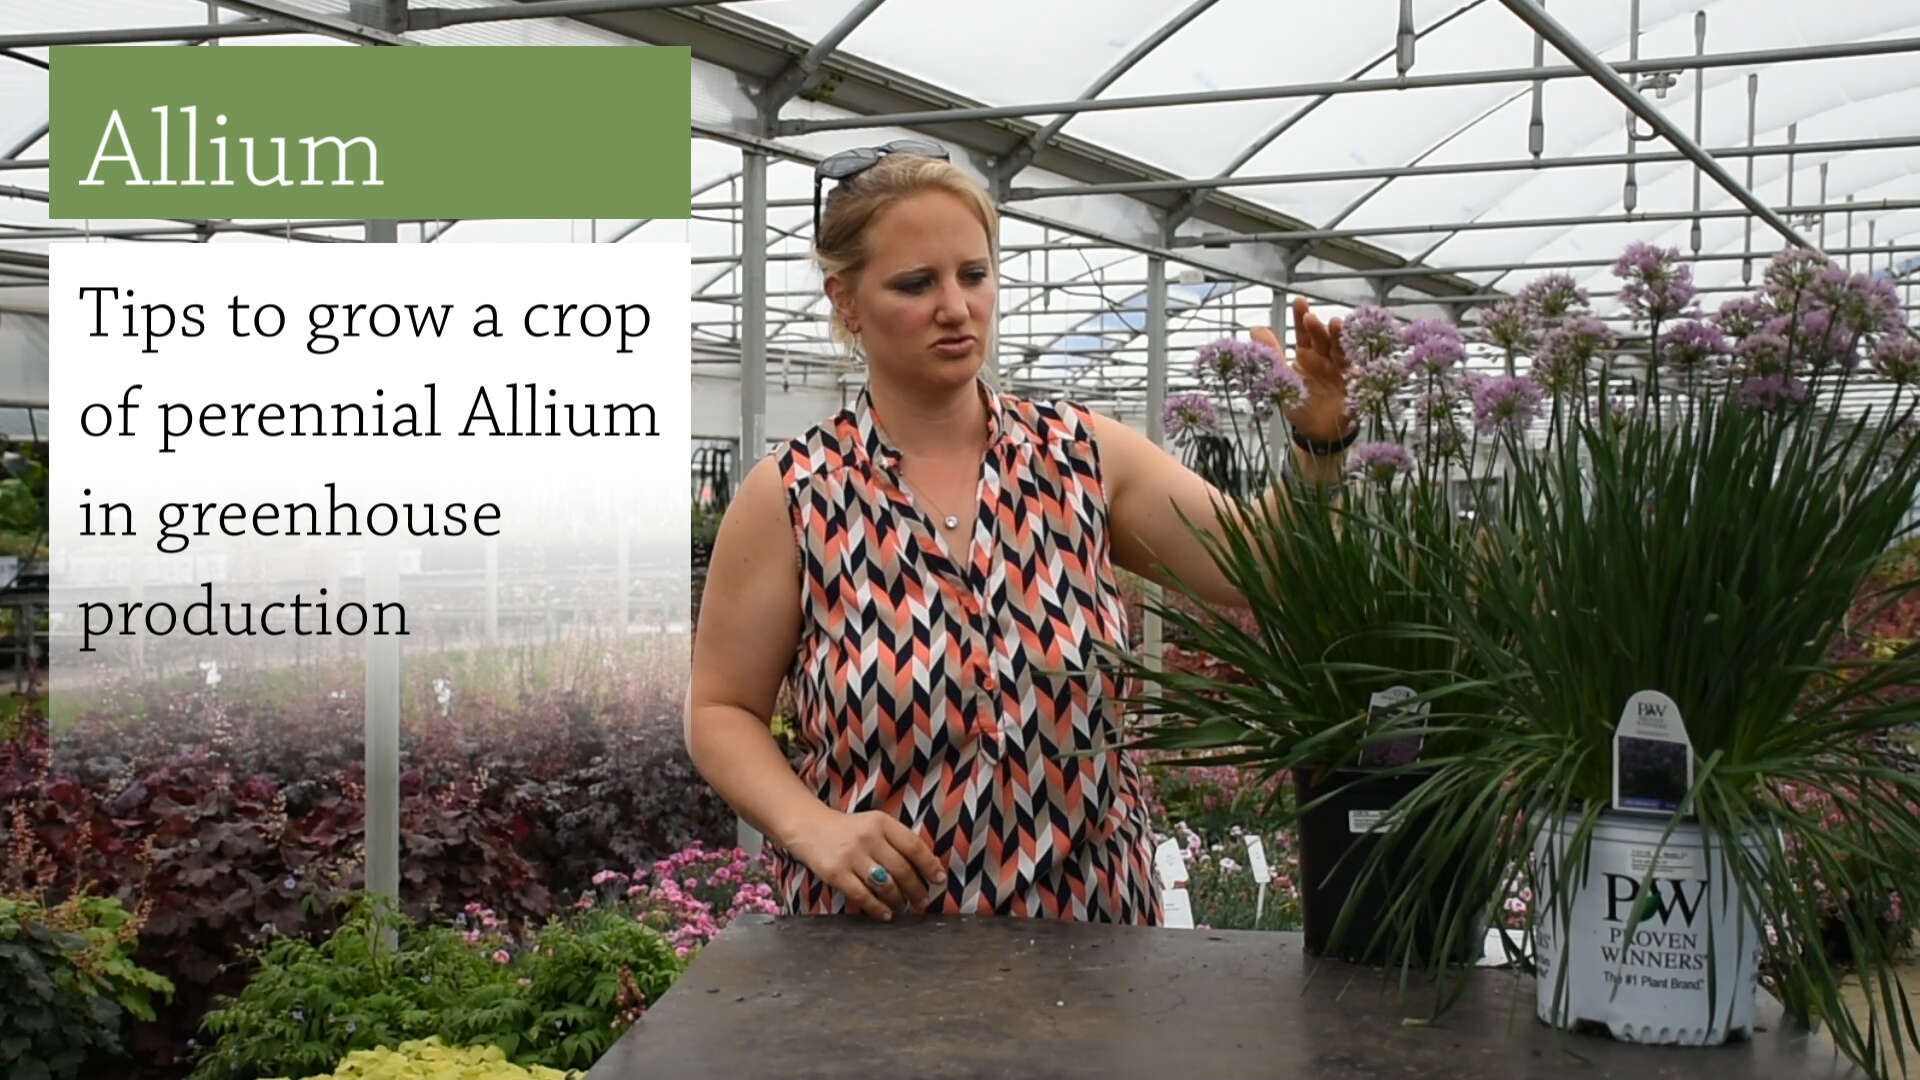 Allium Culture and Production Tips